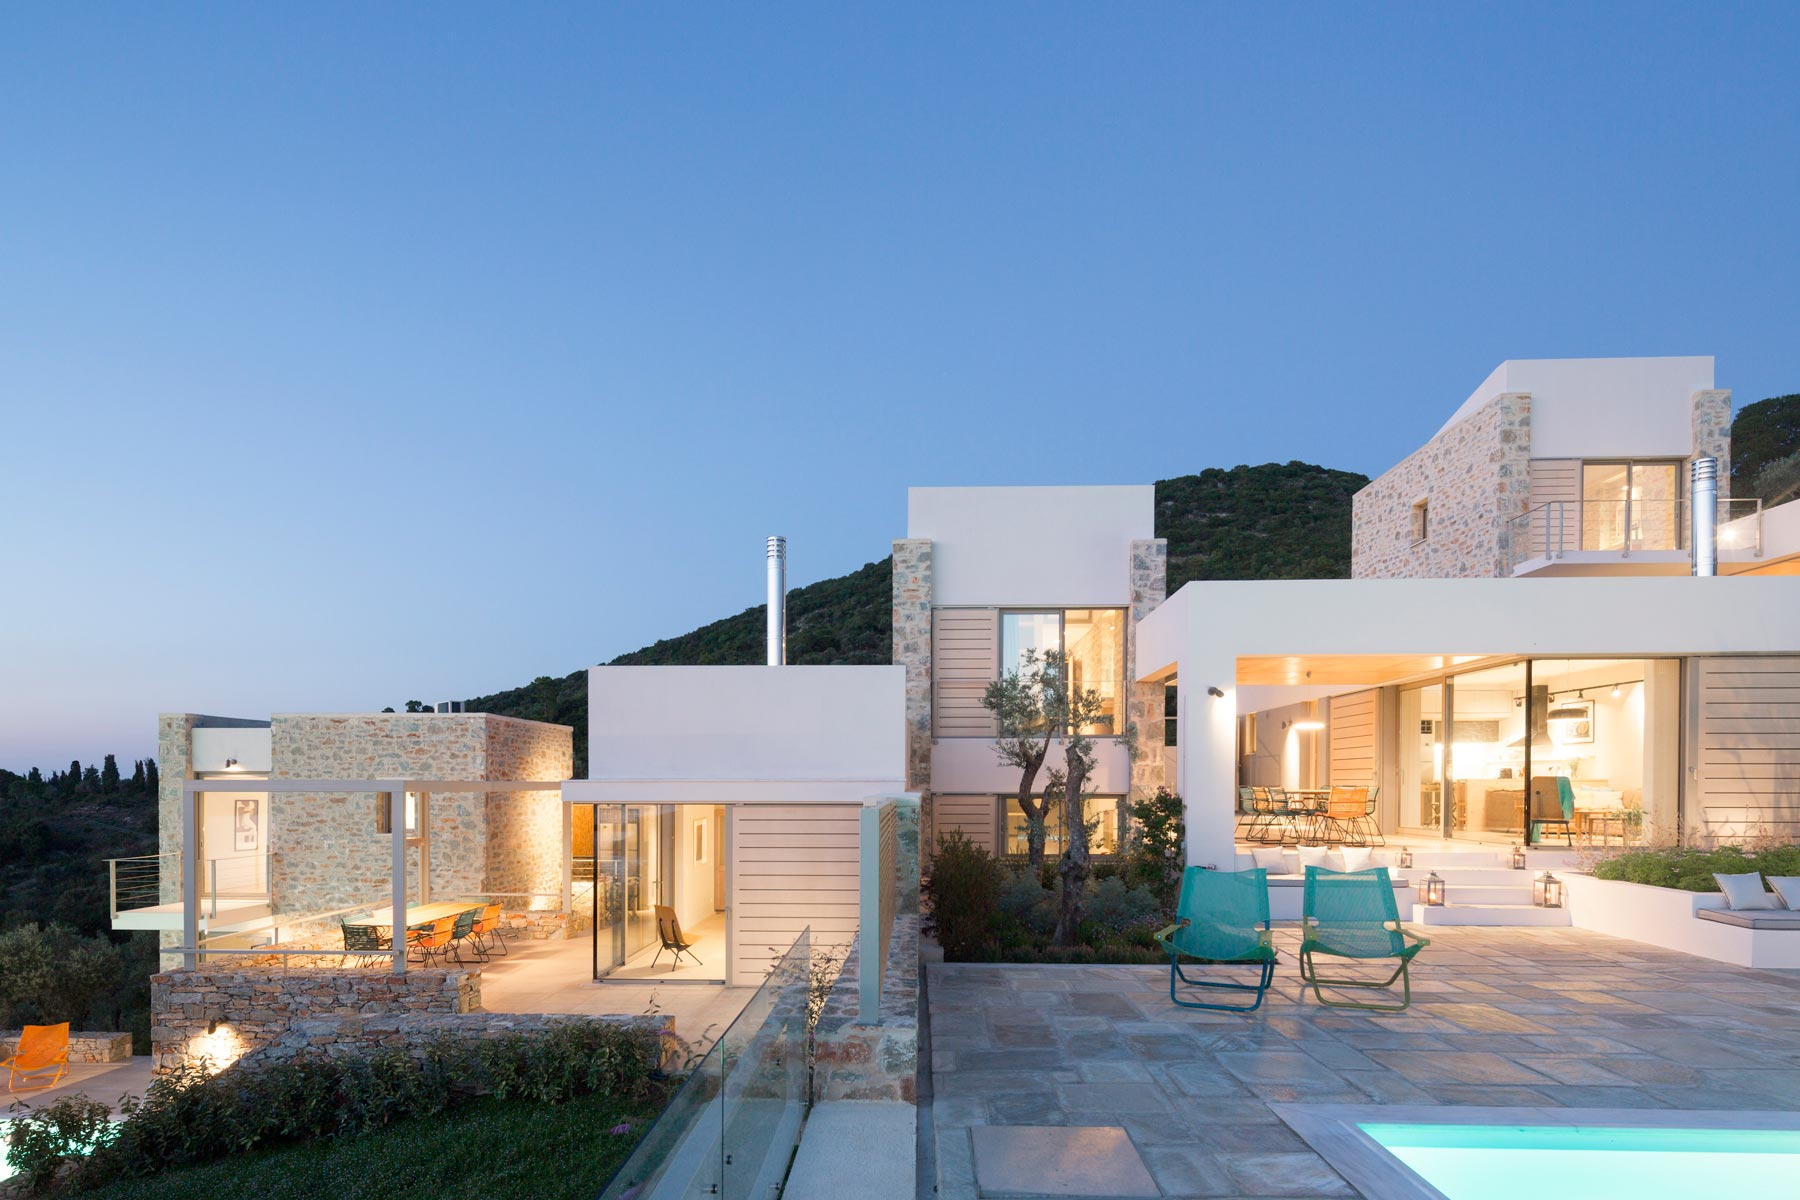 3 Vacation Houses In Skiathos By Hhharchitects The Greek Foundation